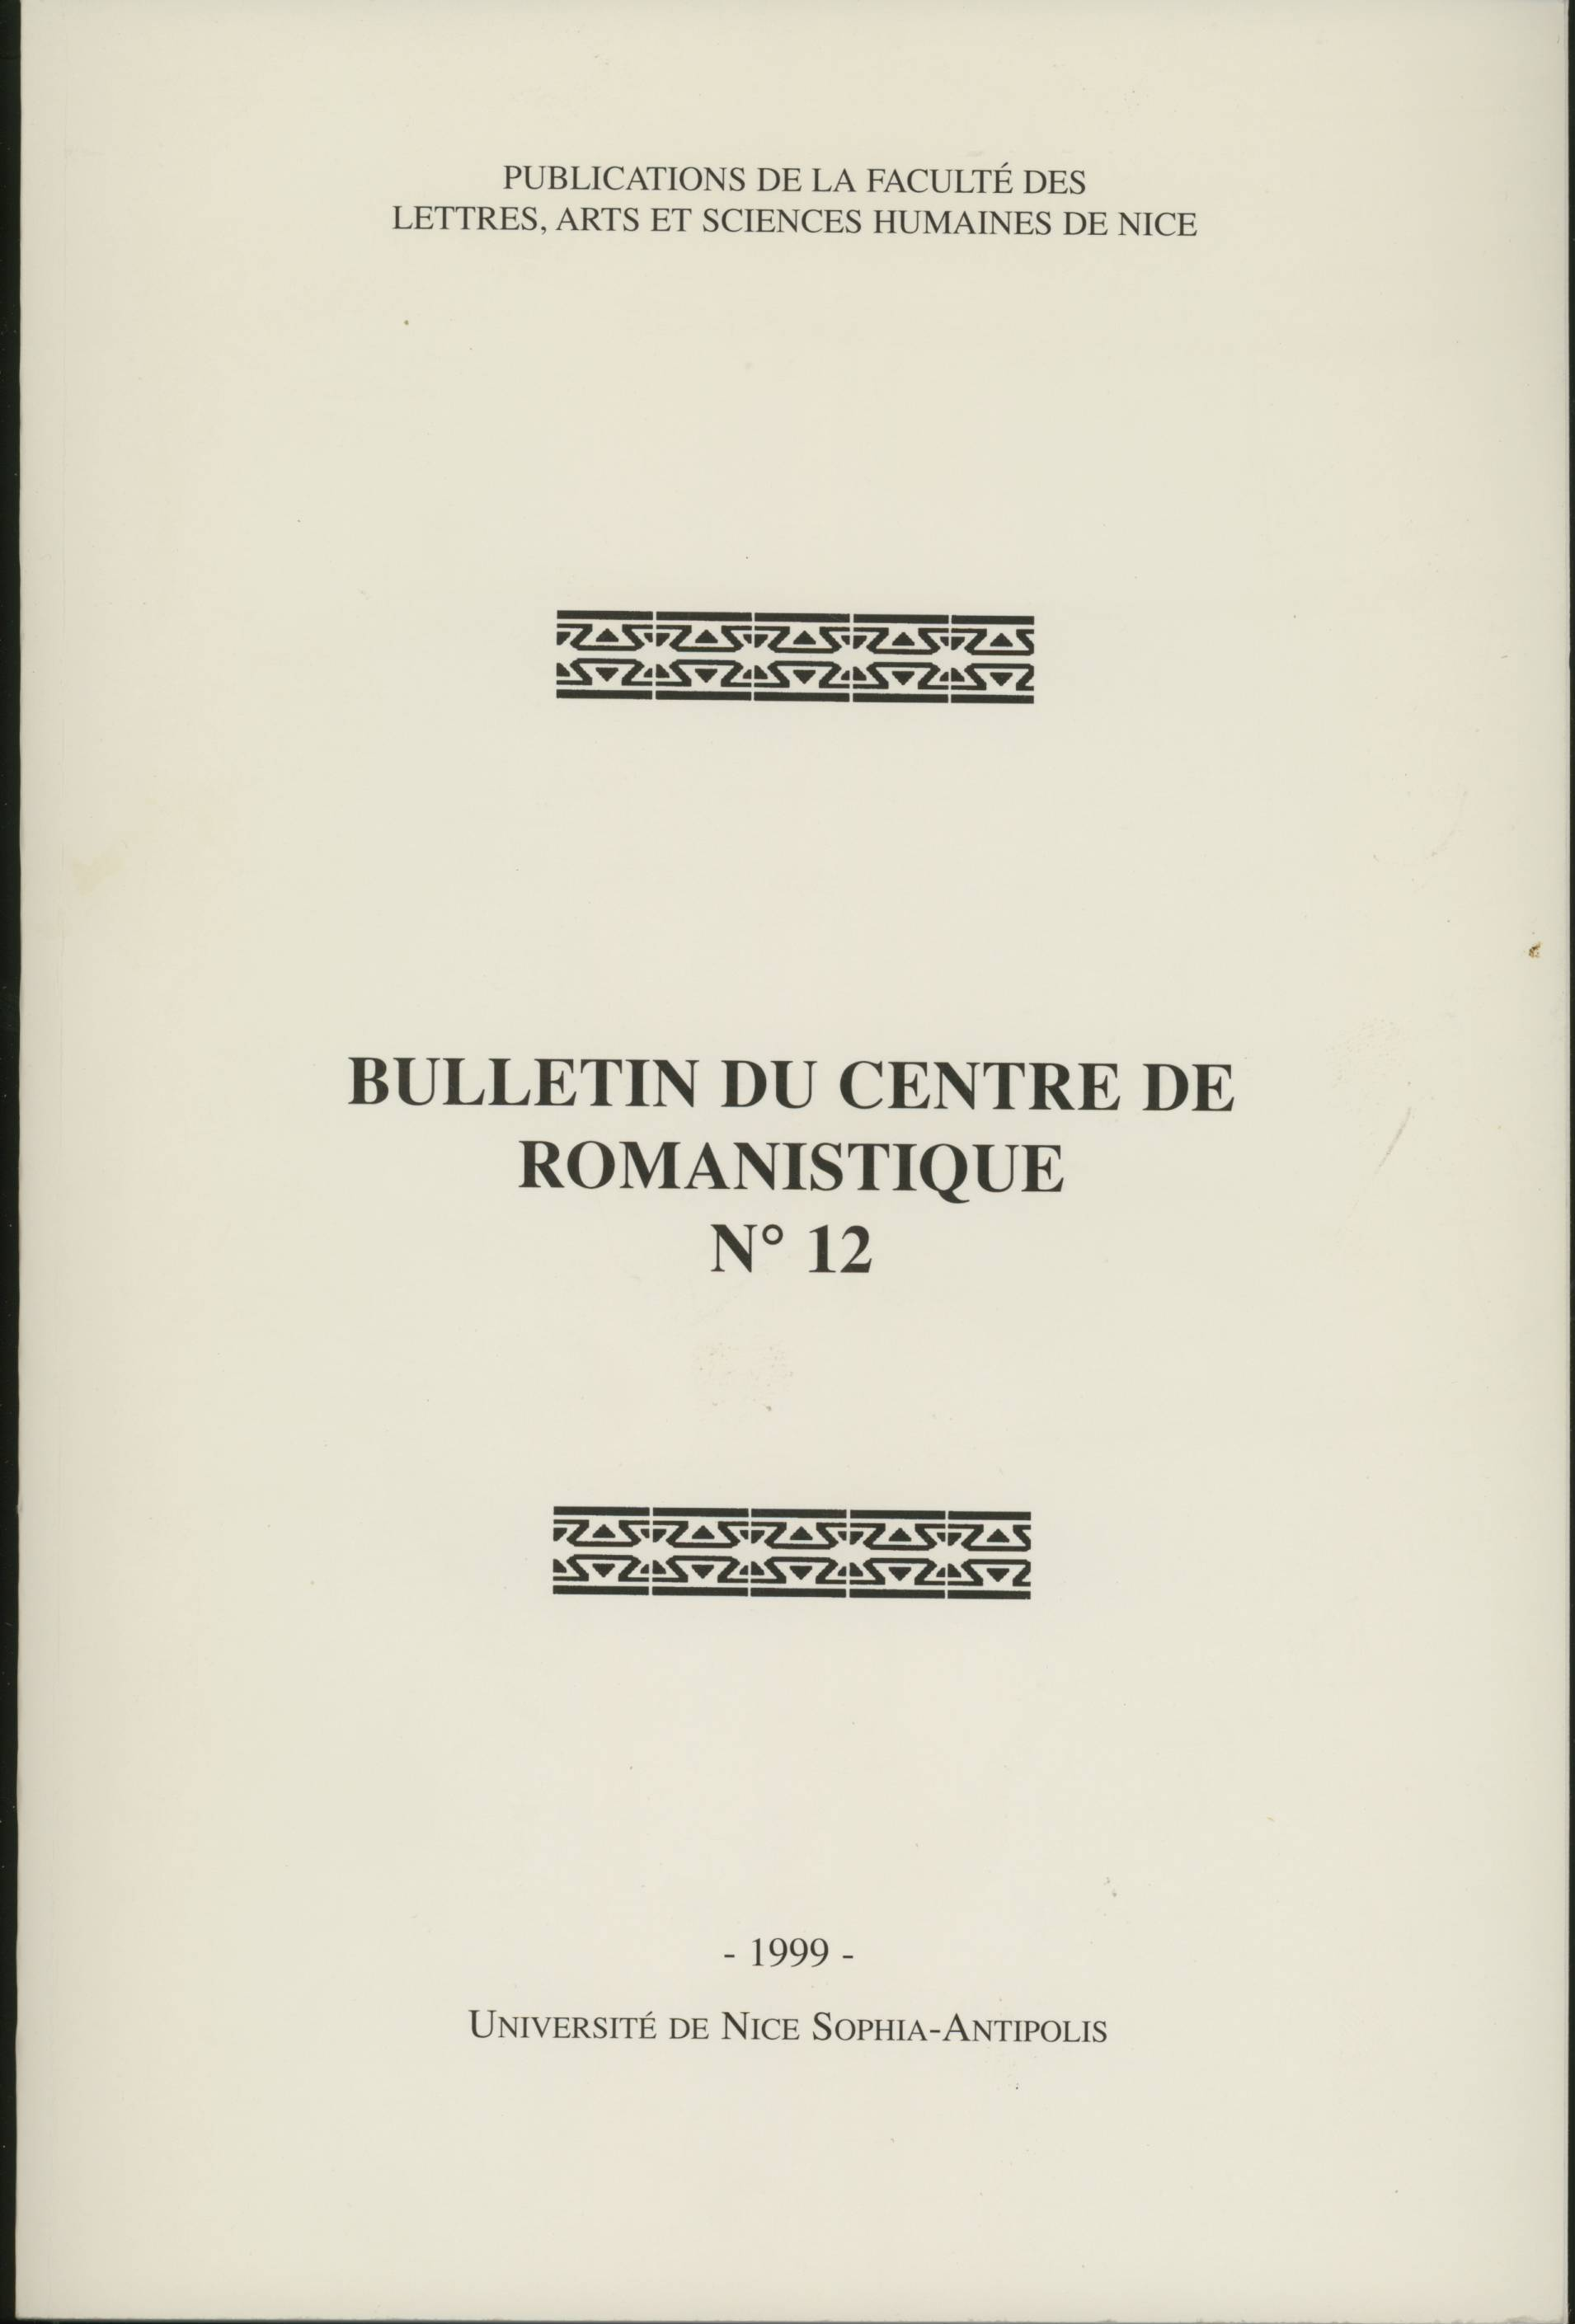 Bulletin du Centre de romanistique n. 12